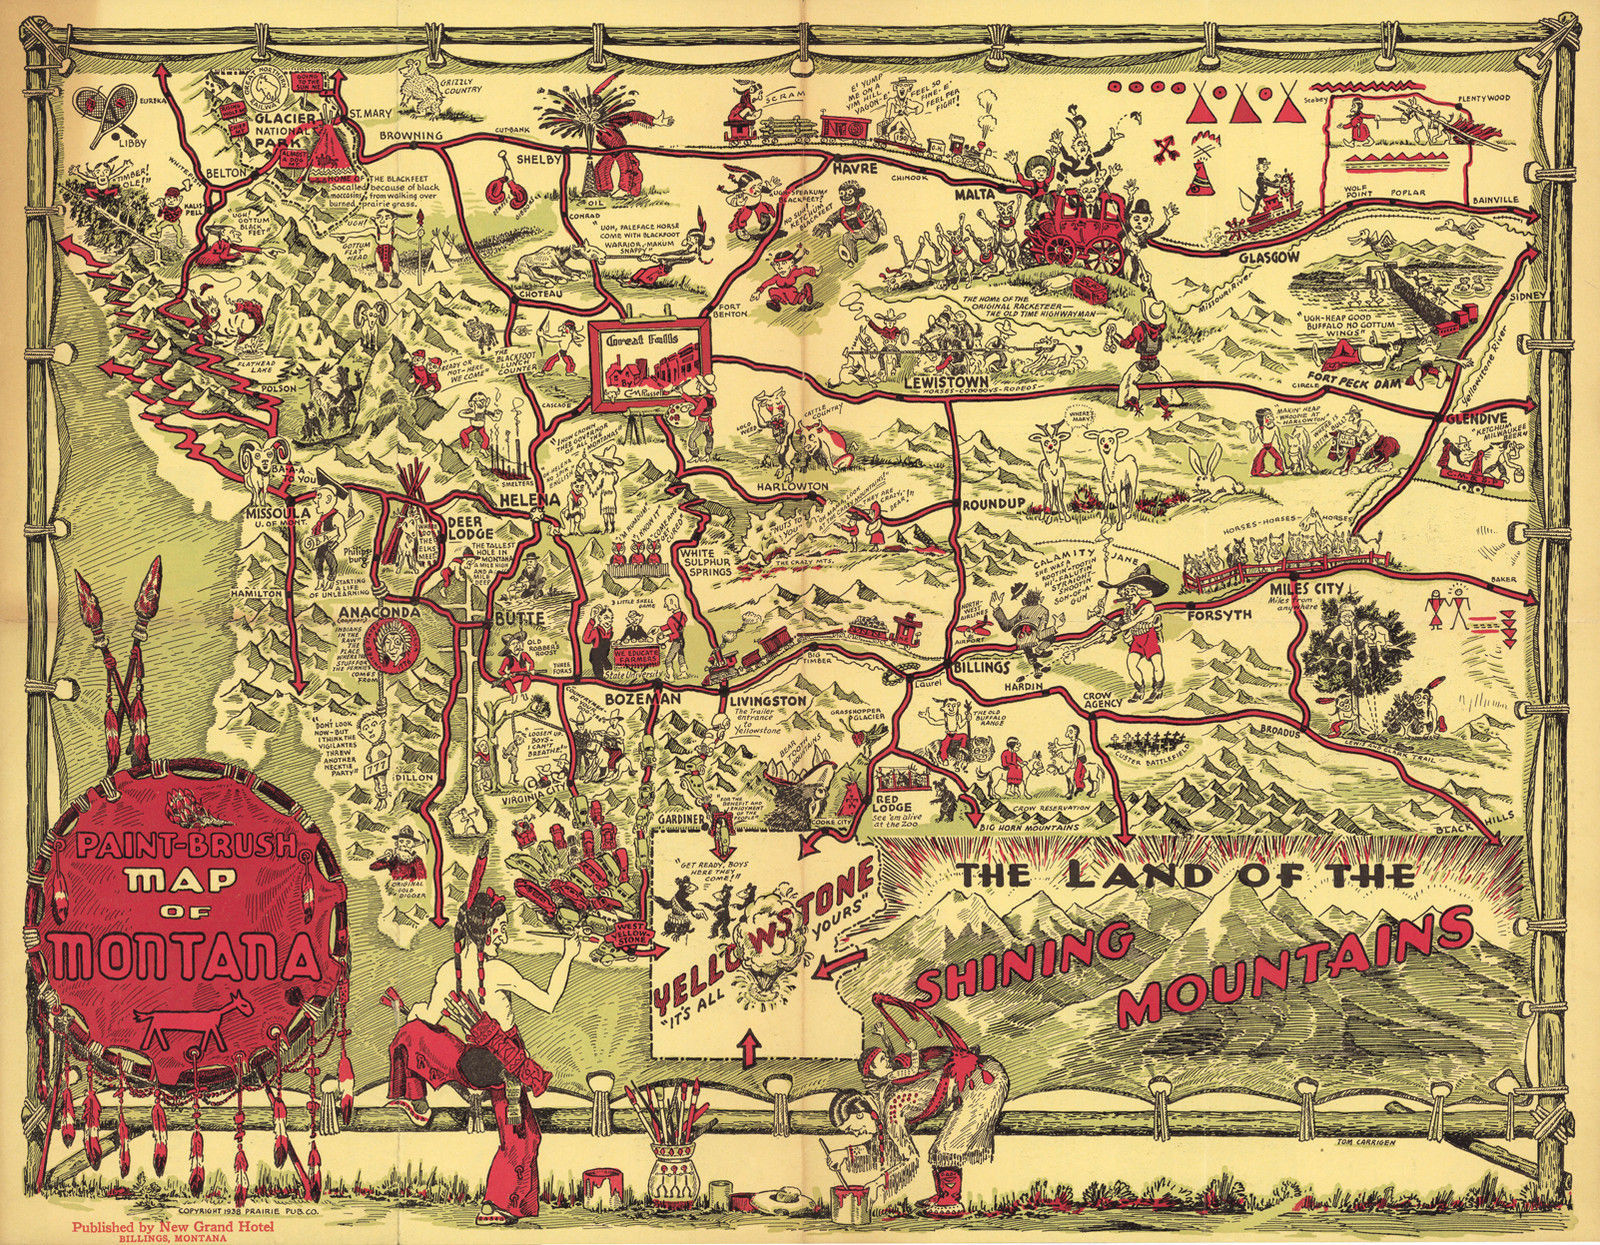 Early Pictorial Map of Montana Wall Art and 49 similar items